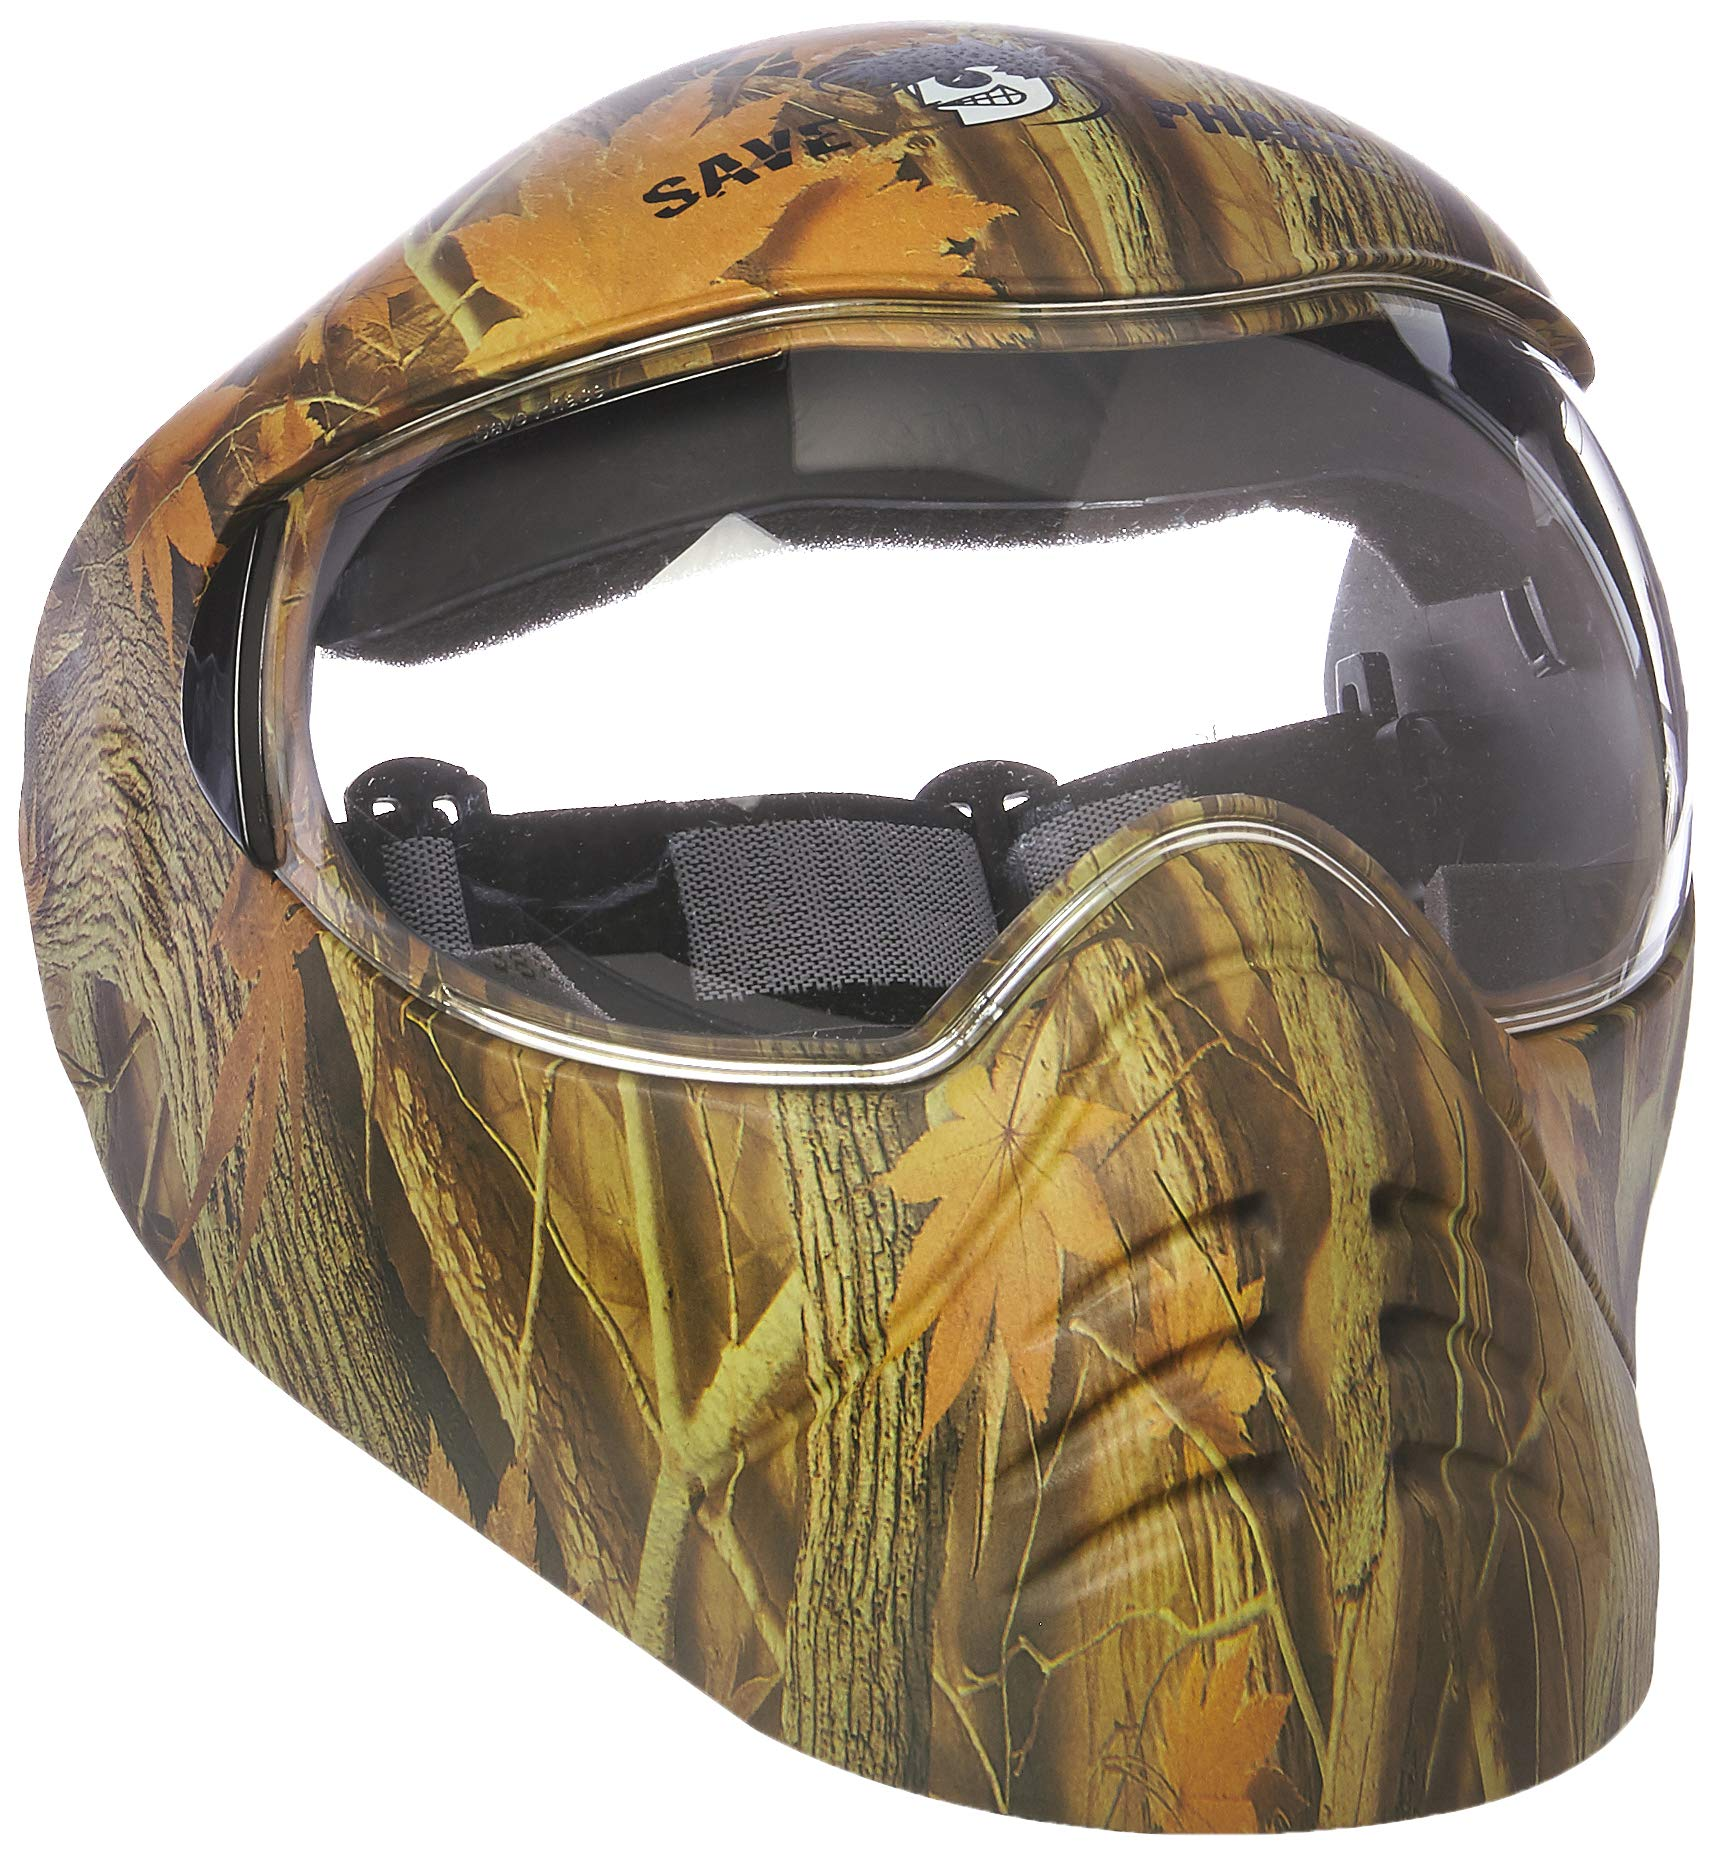 Save Phace 3013005 Hed Hunter Sport Utility Mask 2